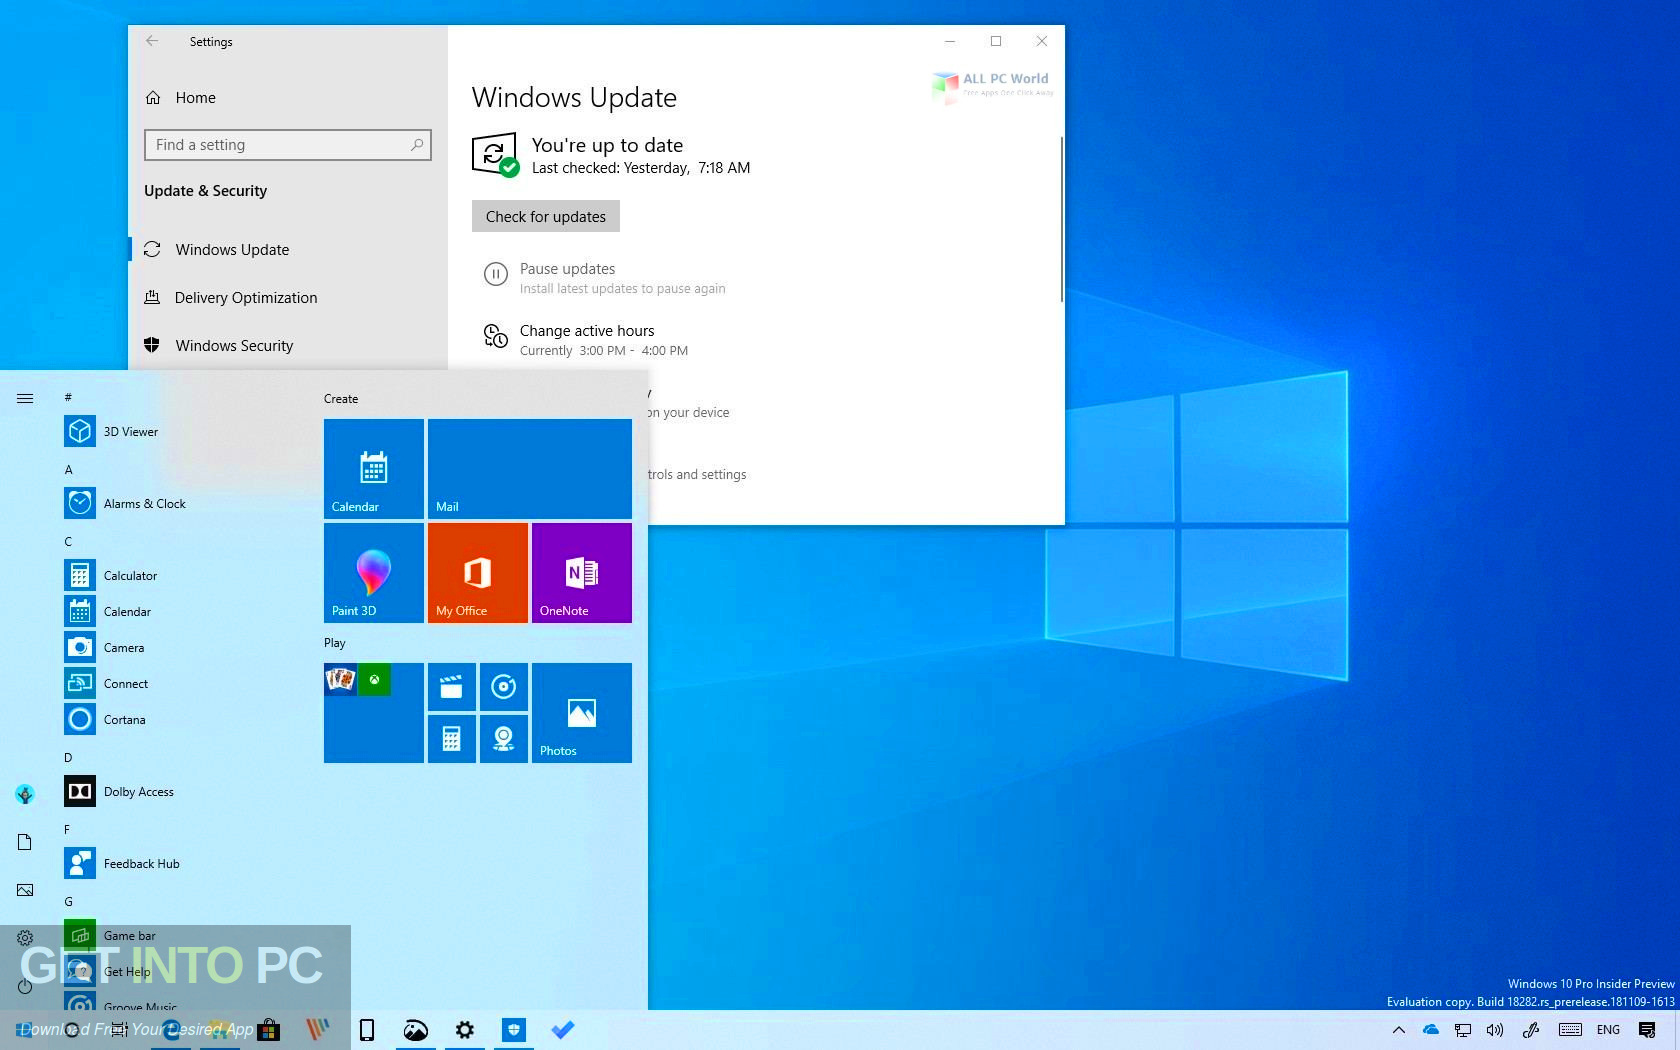 Windows 10 19H1 updated in August 2019 Direct link Download-GetintoPC.com